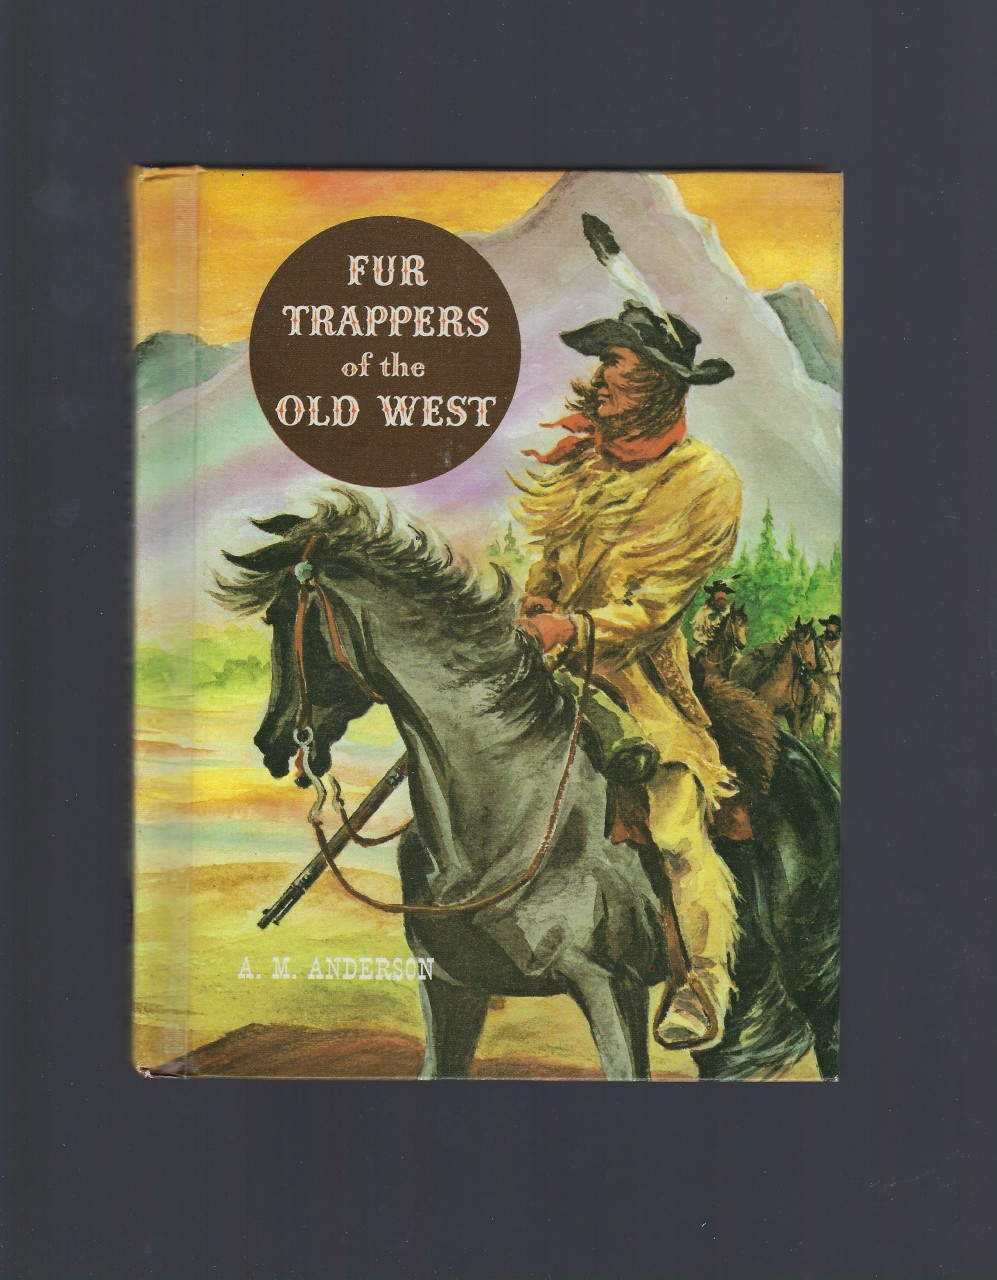 Fur Trappers of the Old West (American Adventure Series) 1961, A. M. Anderson; Jack Merryweather [Illustrator]